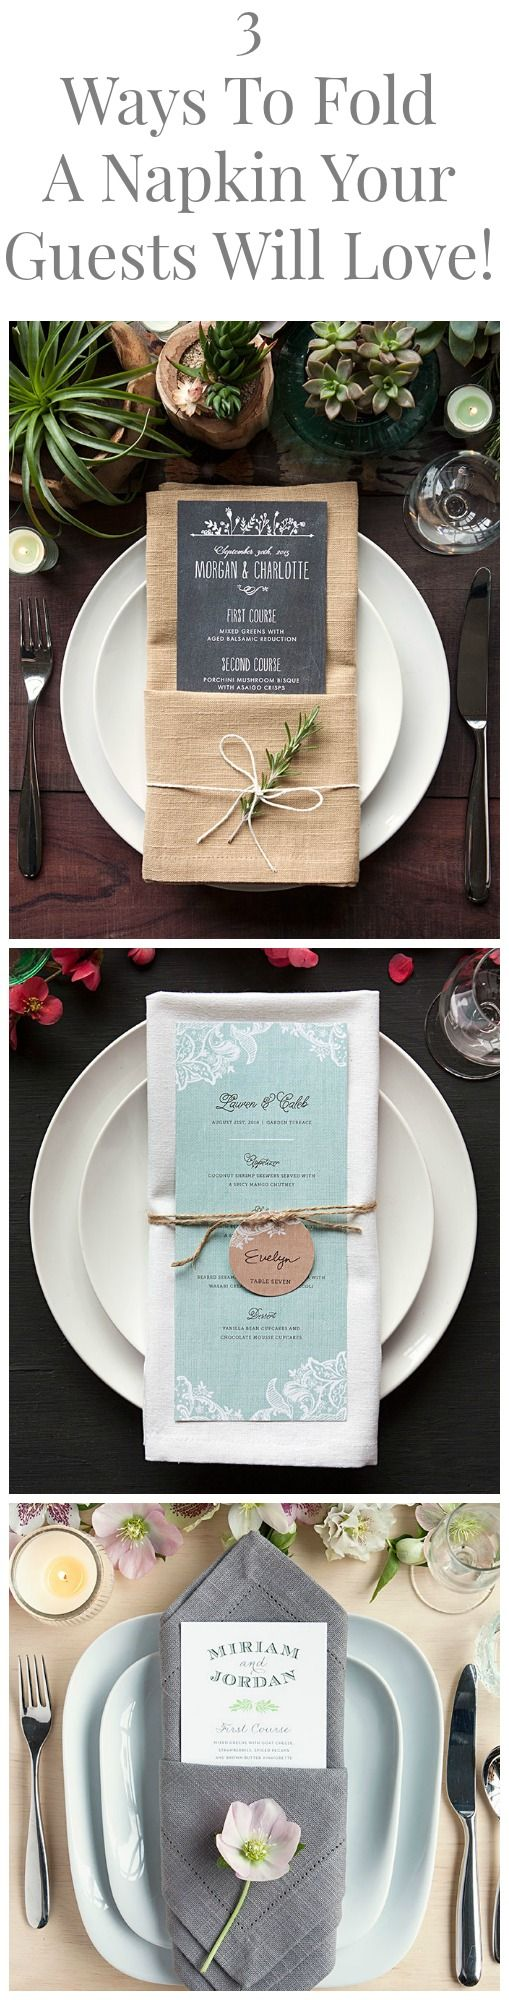 wedding napkins napkins for wedding 3 Great Ways To Fold A Napkin For Your Dinner Party or Wedding That Will Stun